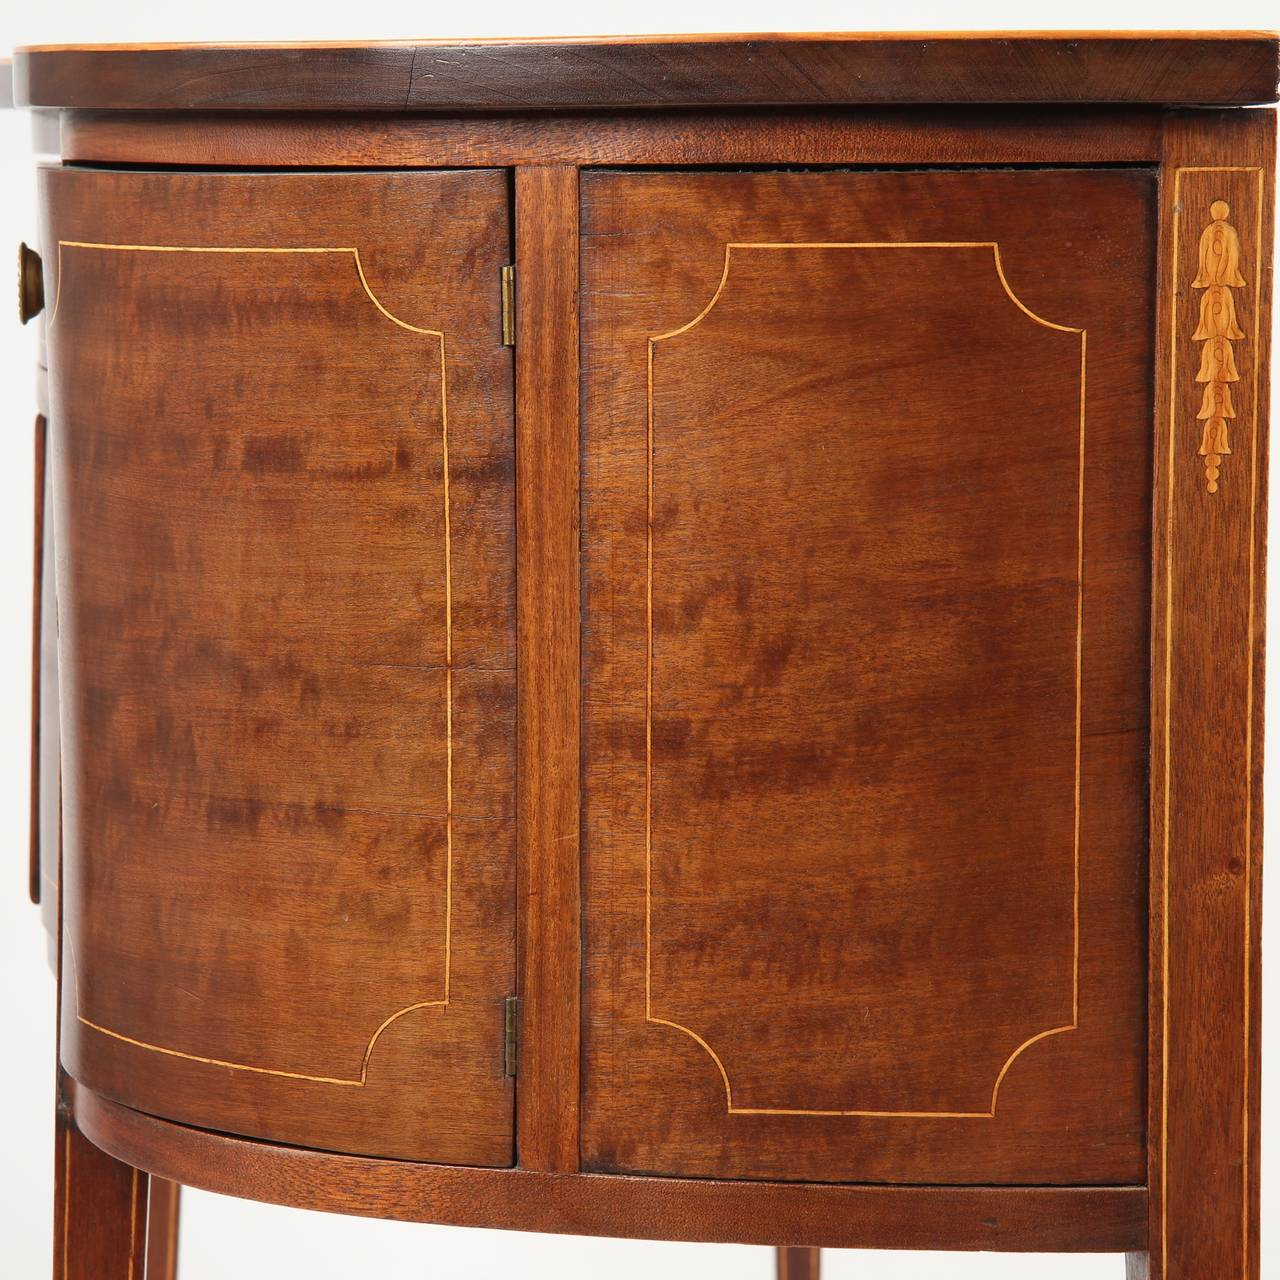 1910 American Furniture Styles: Small American Federal Style Inlaid Sideboard Console C